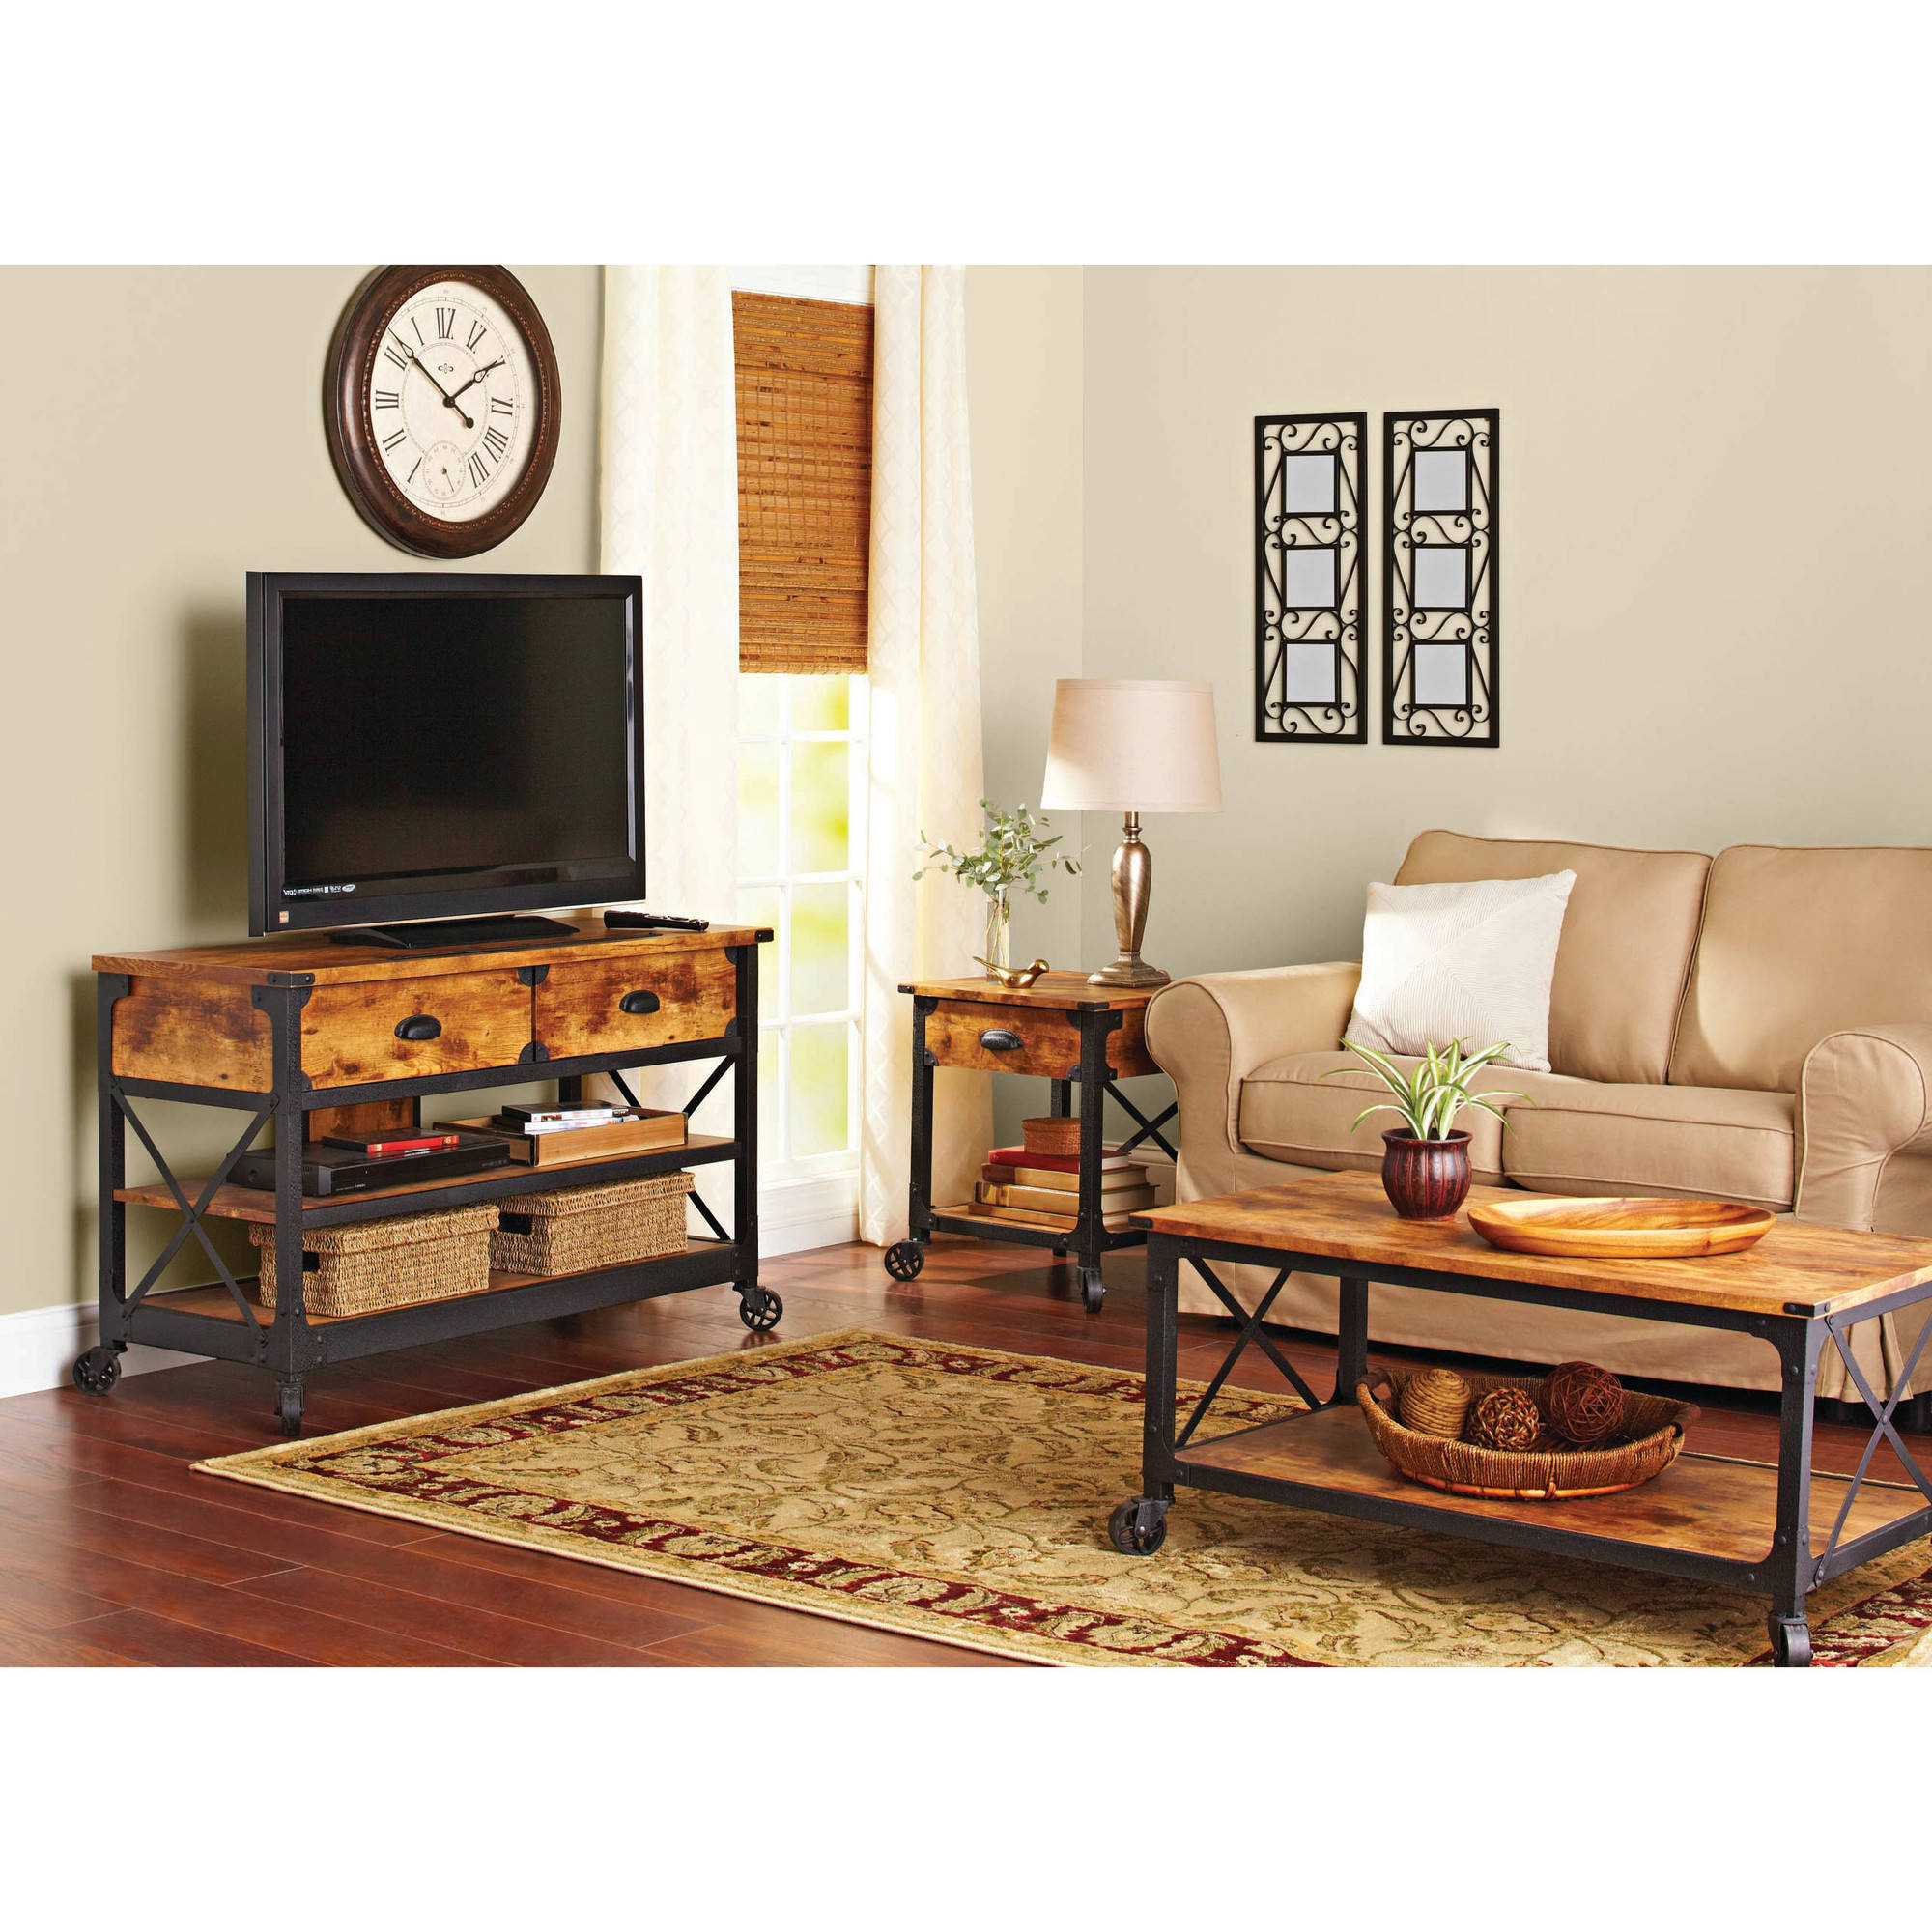 Preferred Coffee Tables And Tv Stands Matching With Regard To Better Homes & Gardens Rustic Country Tv Stand For Tvs Up To (View 14 of 20)